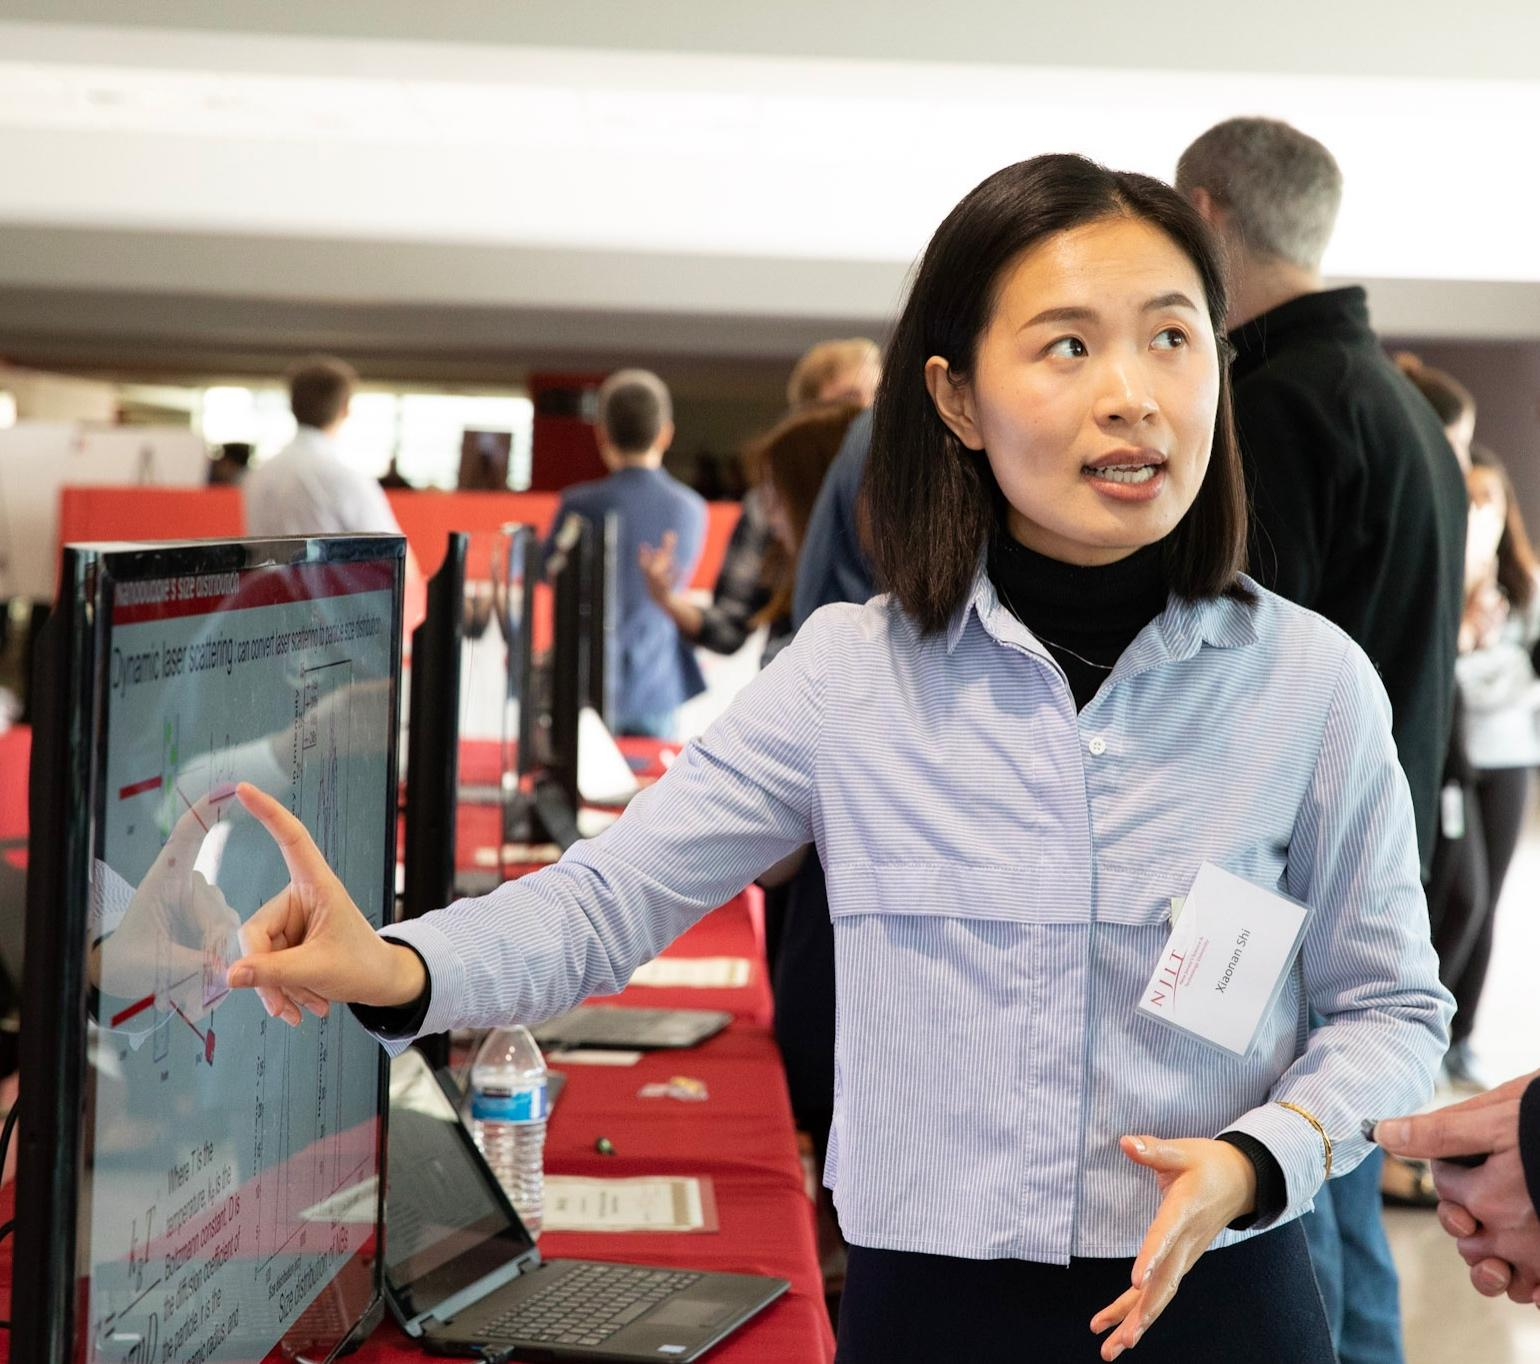 Environmental Engineering Ph.D. student, Xiaonan Shi, describes her recent research involving the use of nanobubbles to improve environmental remediation efforts and enhance agricultural growth.